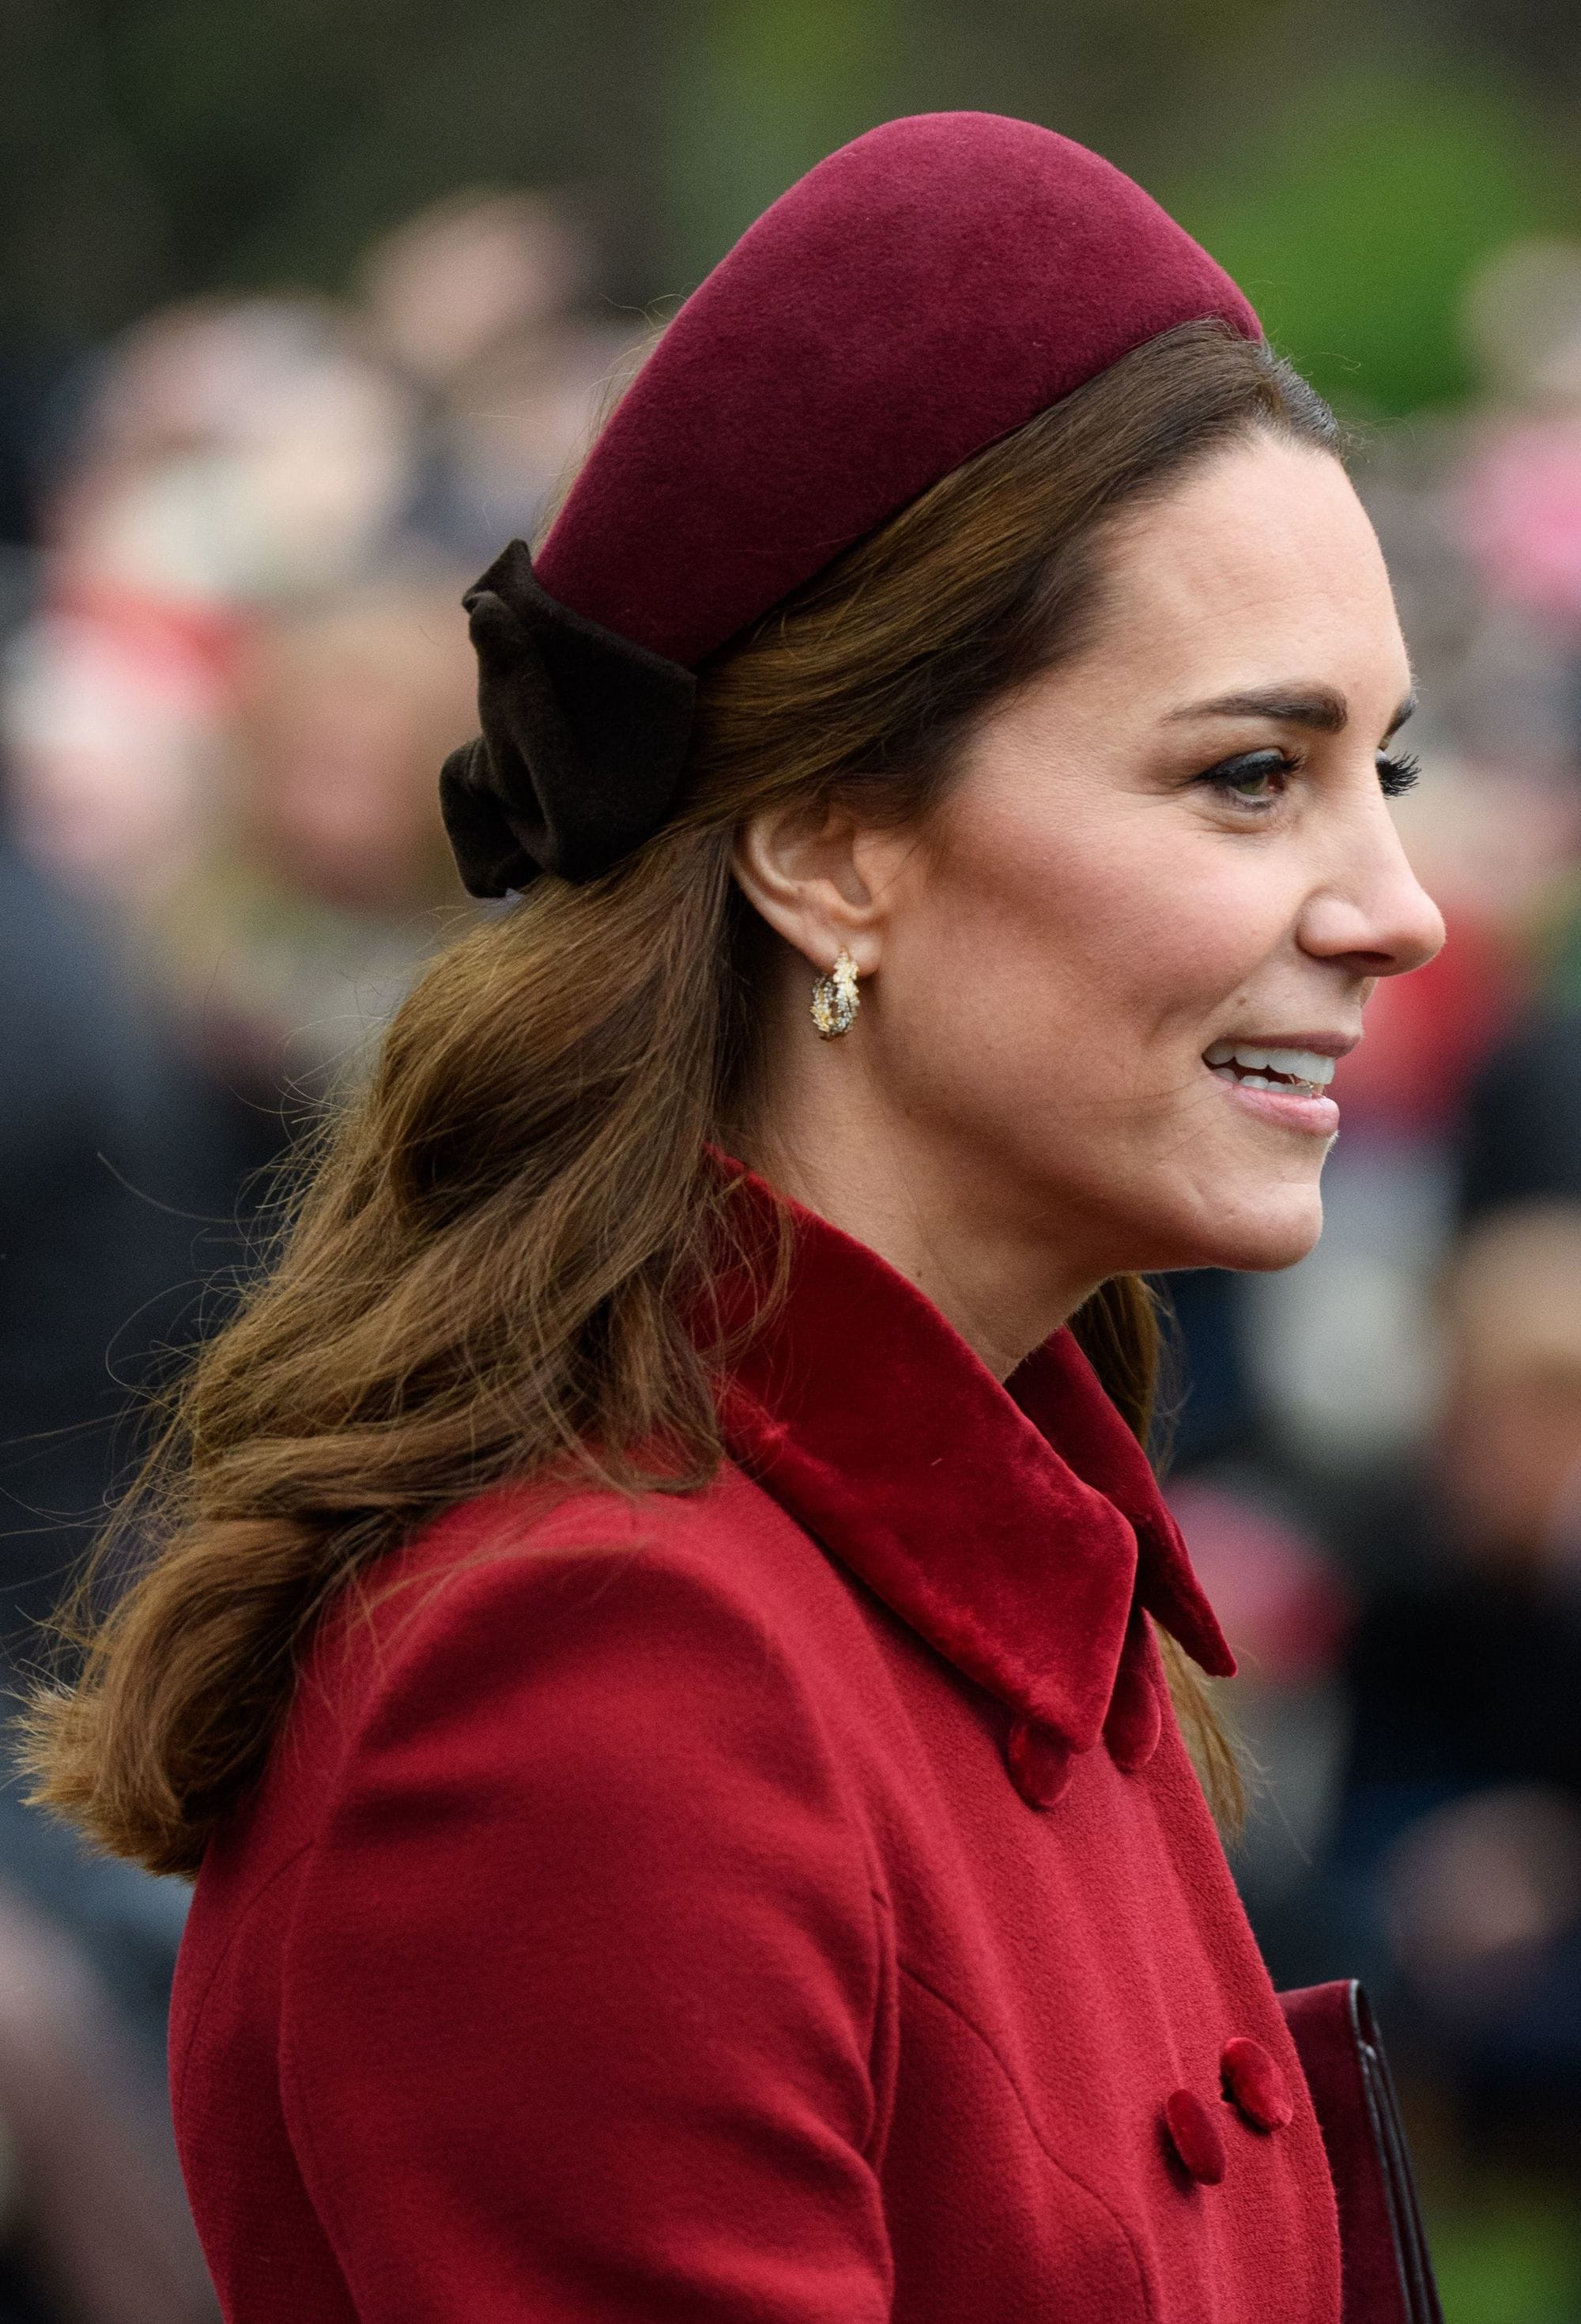 Headband and bandana hairstyles: Kate Middleton with medium length wavy brown hair wearing a burgundy red headband and matching jacket.